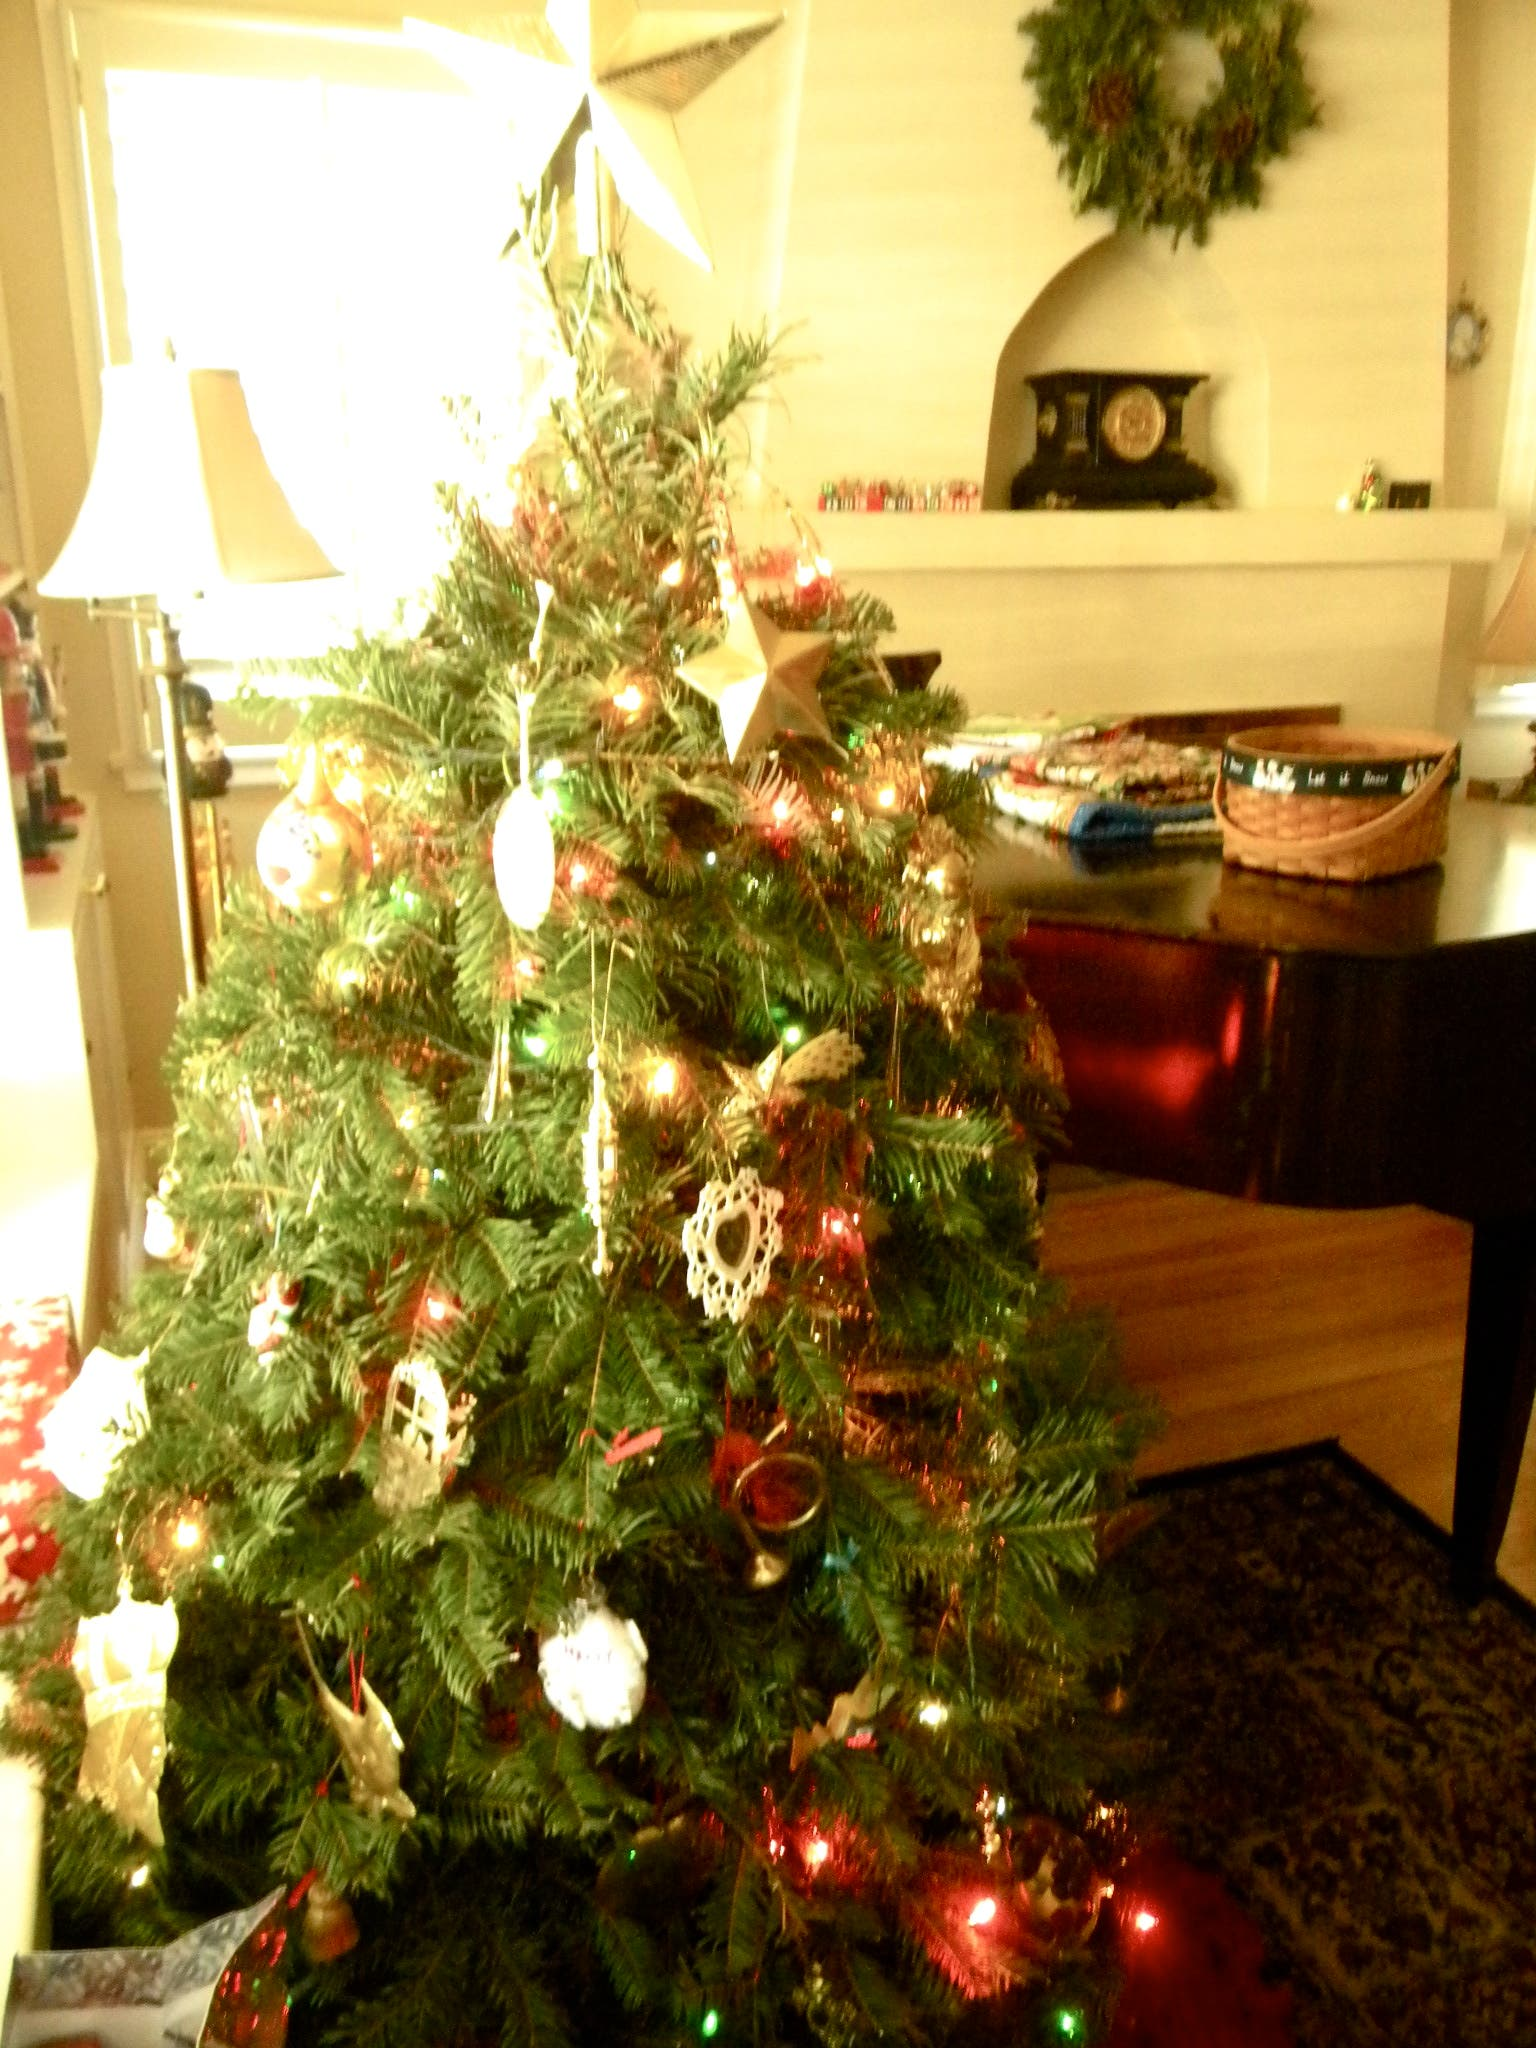 Christmas Tree Recycle Design.How To Recycle Your Christmas Tree Montrose Ca Patch